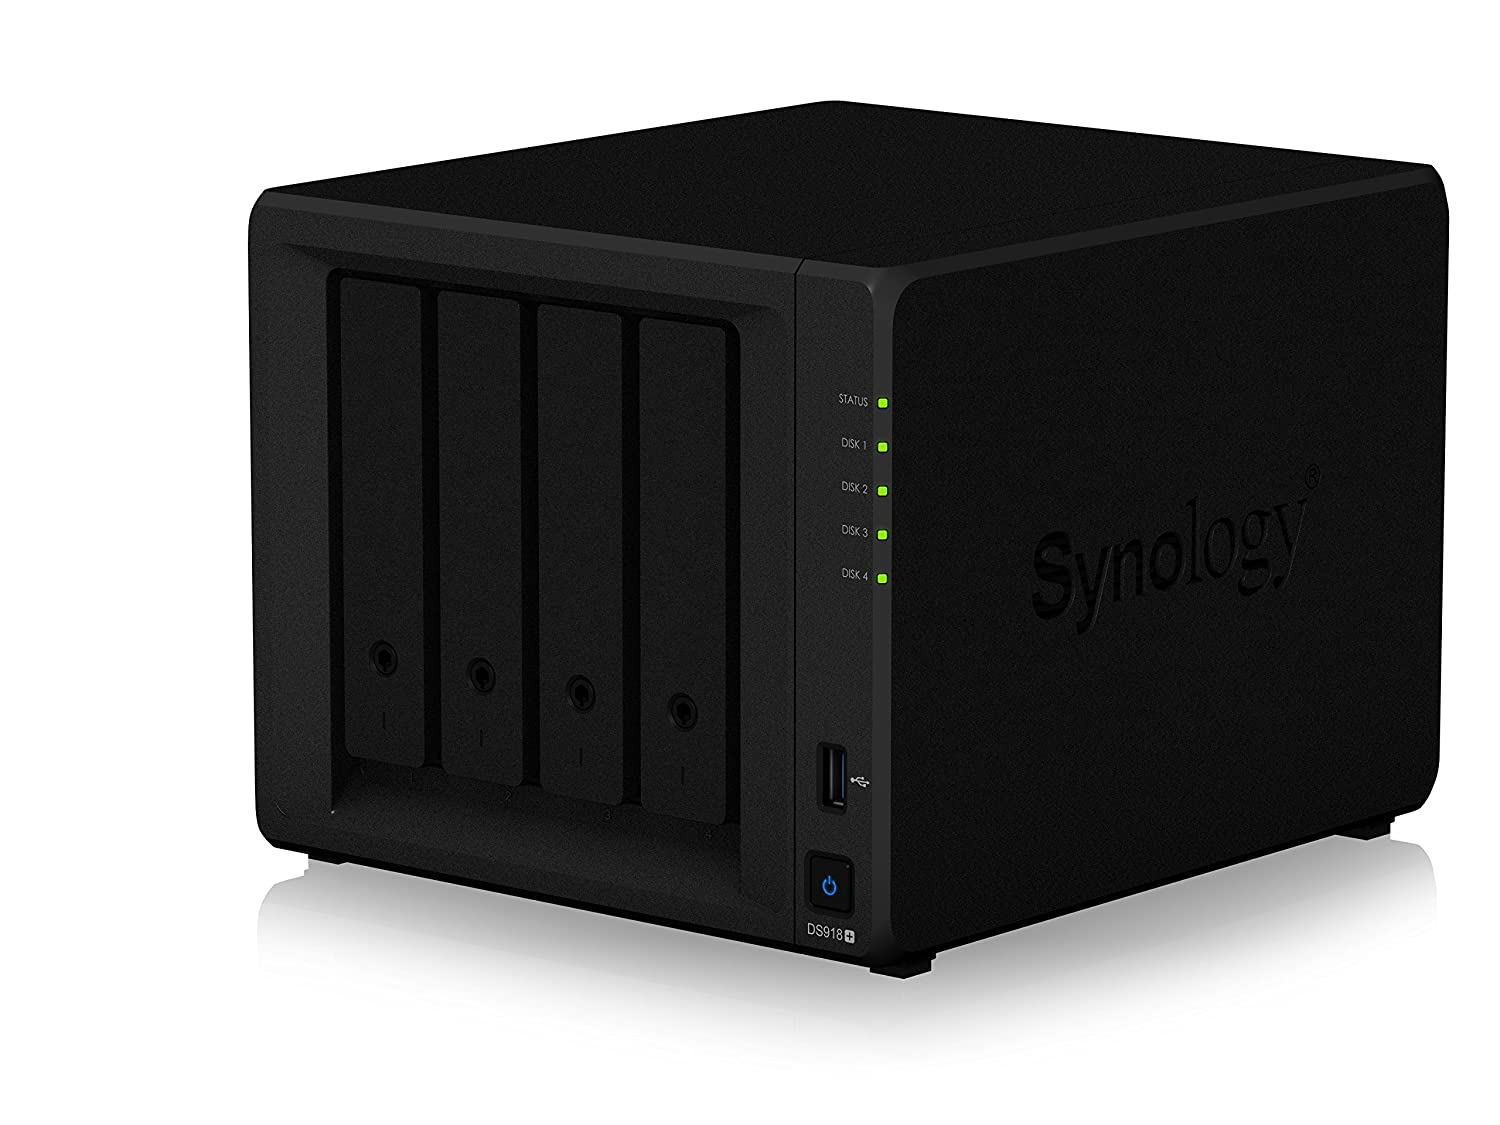 Synology 4 bay NAS DiskStation DS918+ (Diskless) - Review